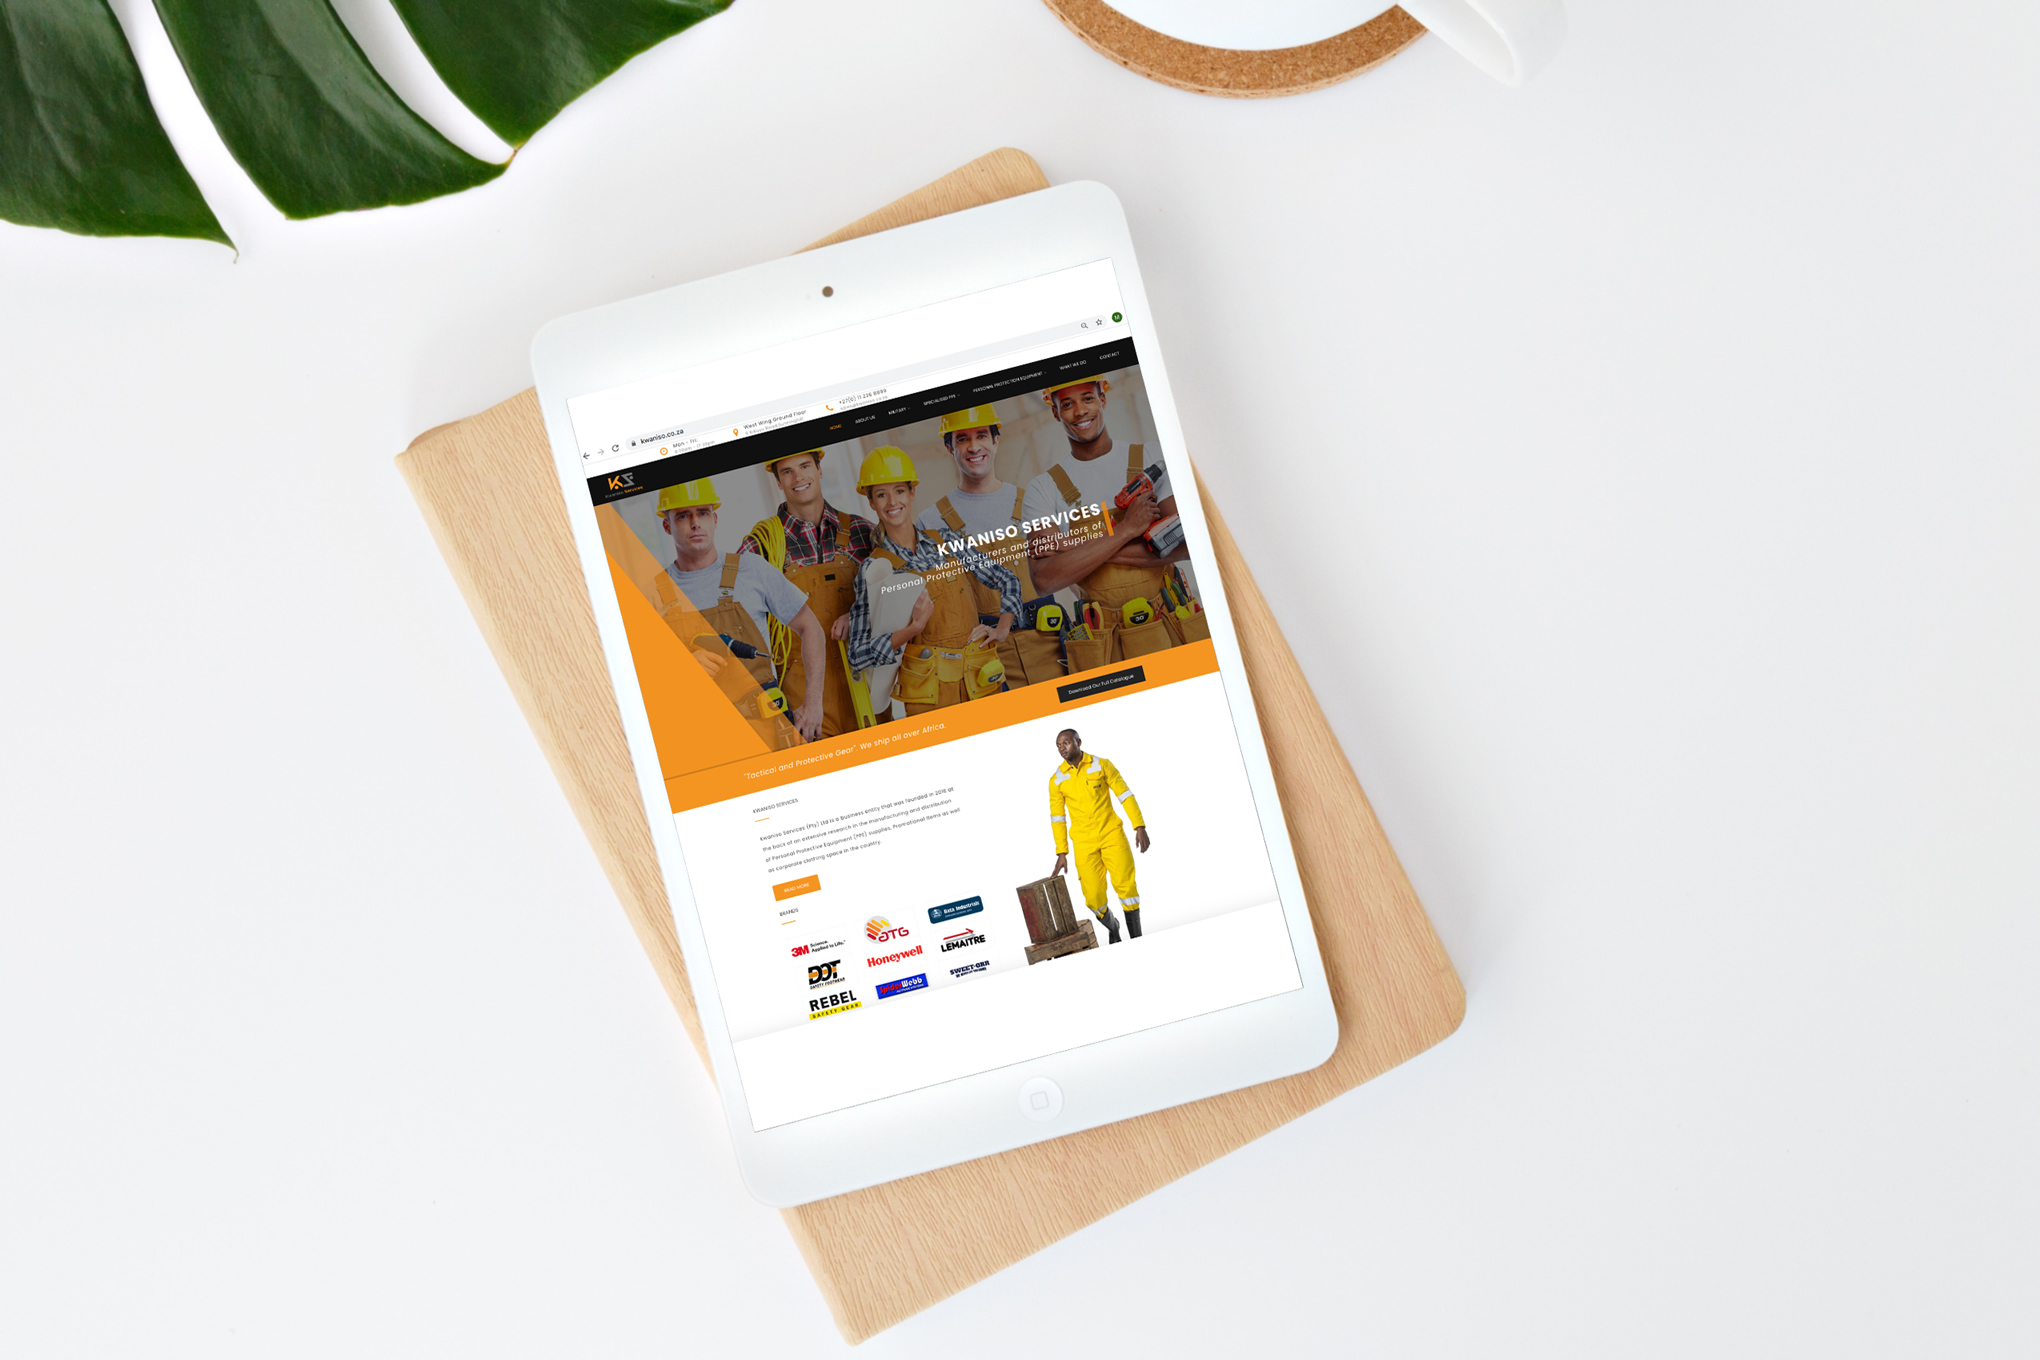 Kwaniso-Services-Website-on-tablet